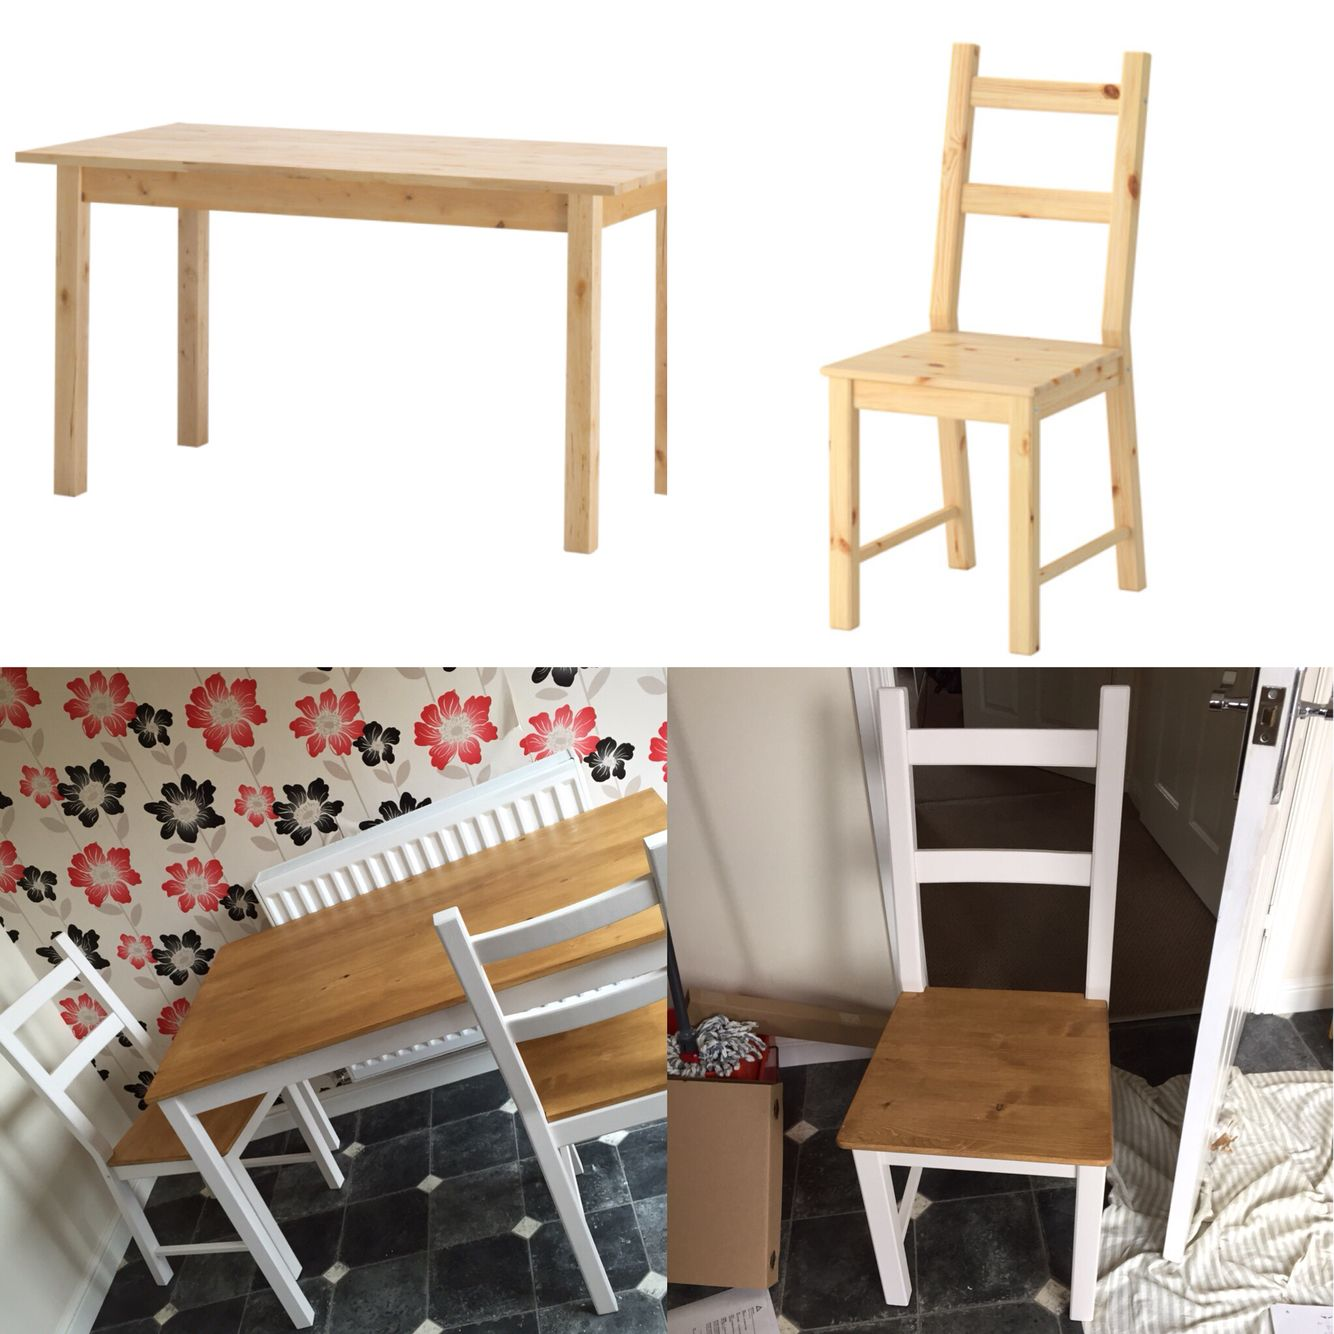 IKEA Ivor Chairs And Ingo Table Painted In Soft Cream And Stained With  Vintage Pine.